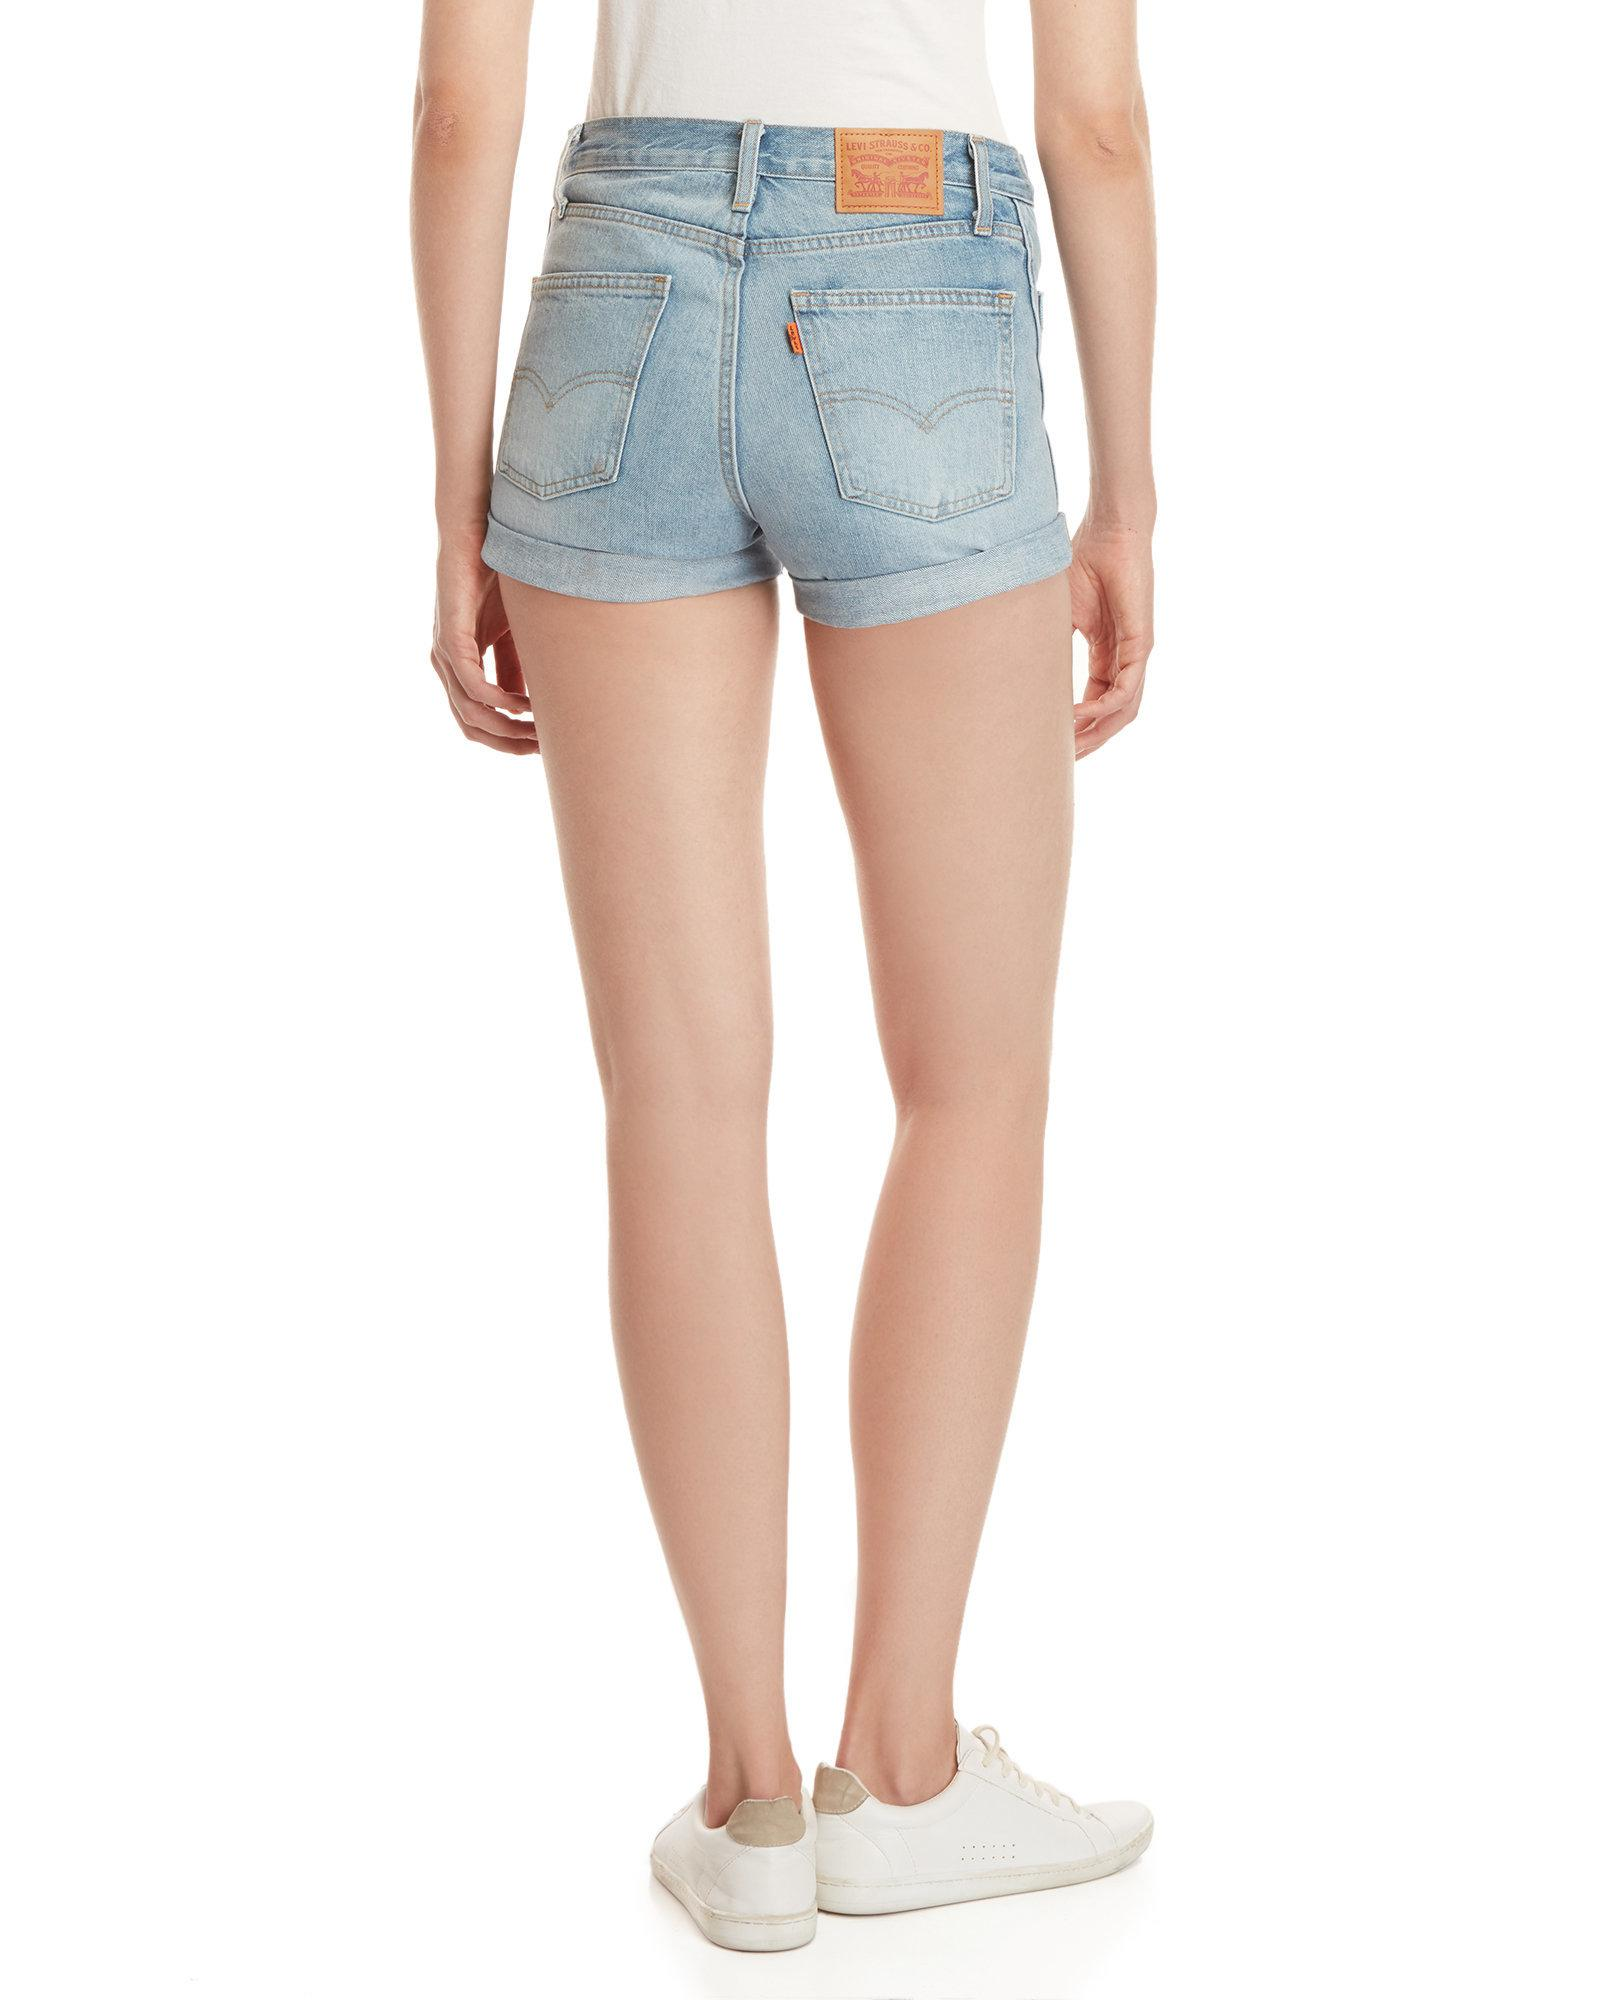 a2025c23 Gallery. Previously sold at: Century 21 · Women's High Waisted Leather  Shorts ...